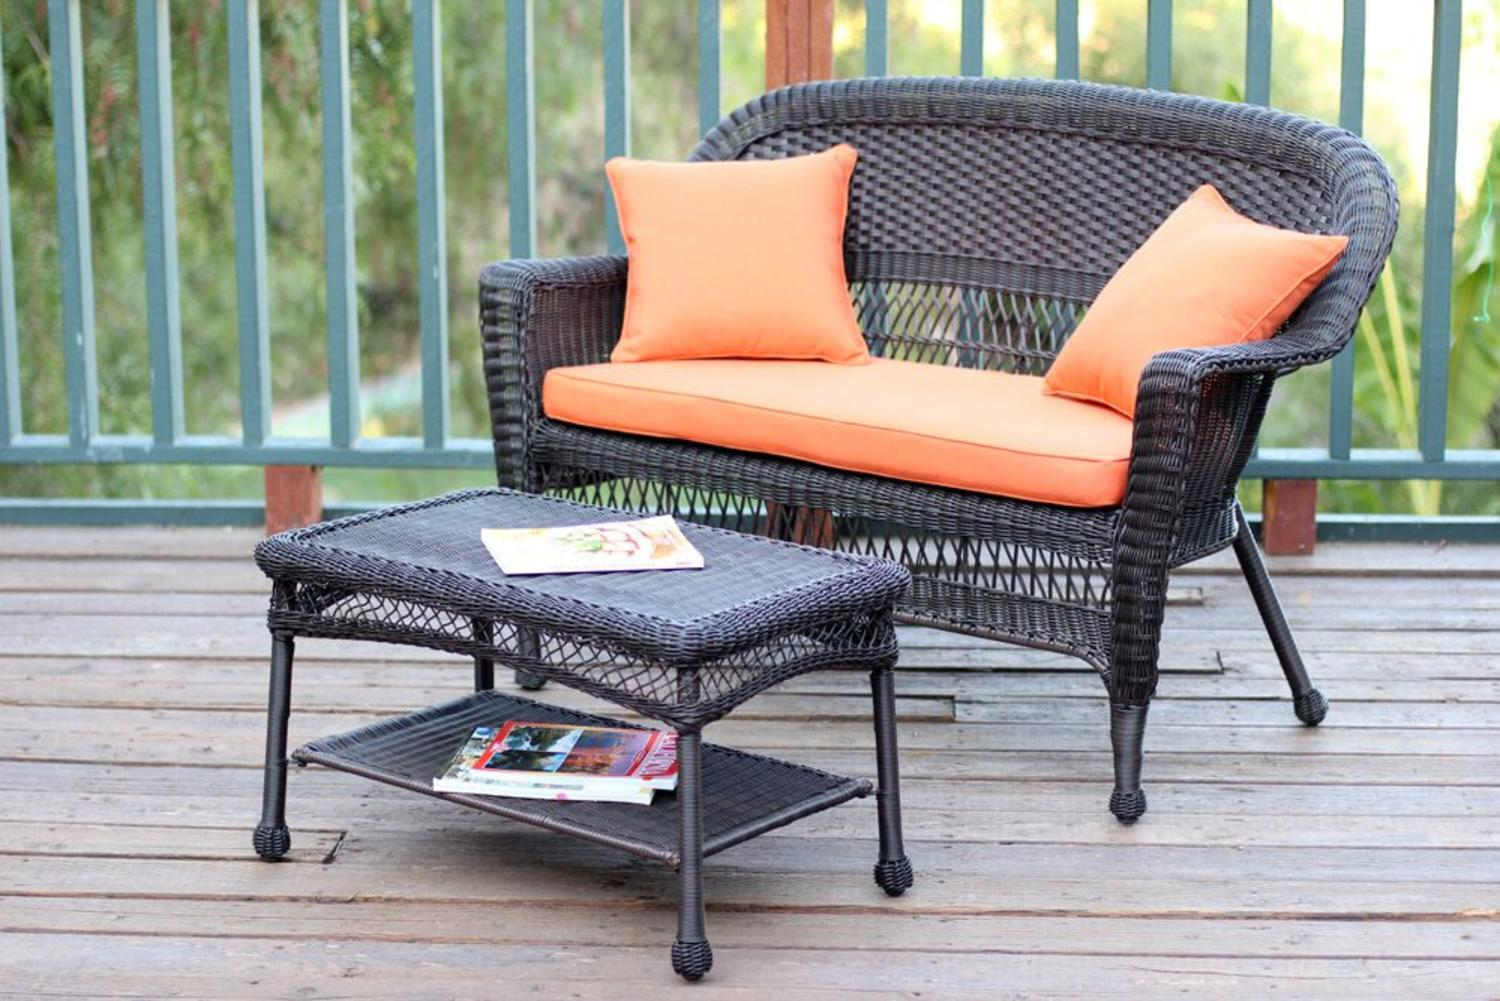 2-Piece Espresso Resin Wicker Patio Loveseat and Coffee Table Set Orange Cushion by CC Outdoor Living